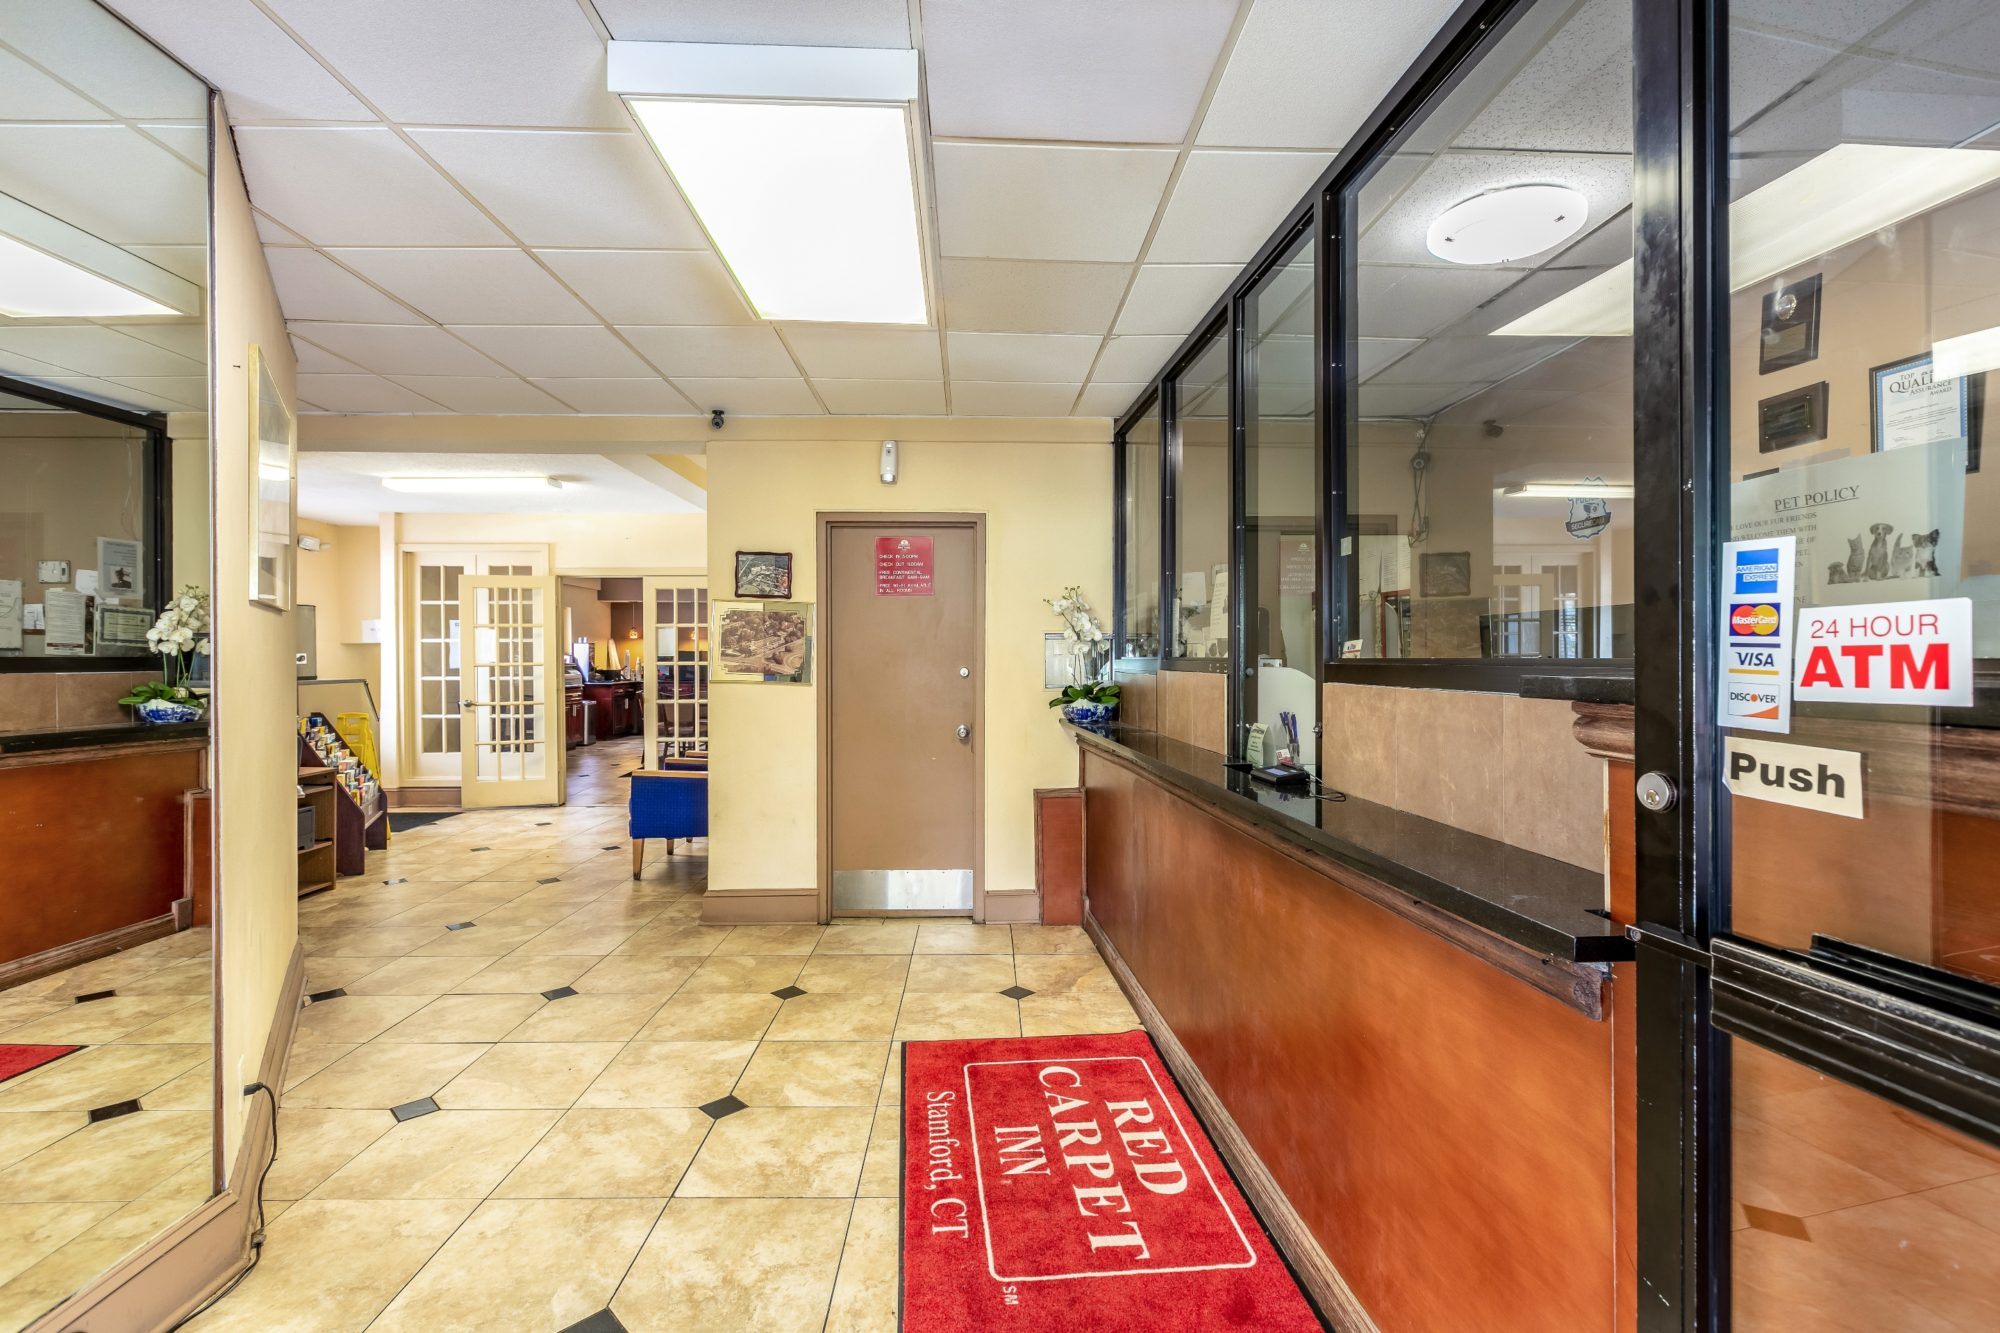 Reception desk, guest information leaflet stand, double doors leading to breakfast area and tiled flooring